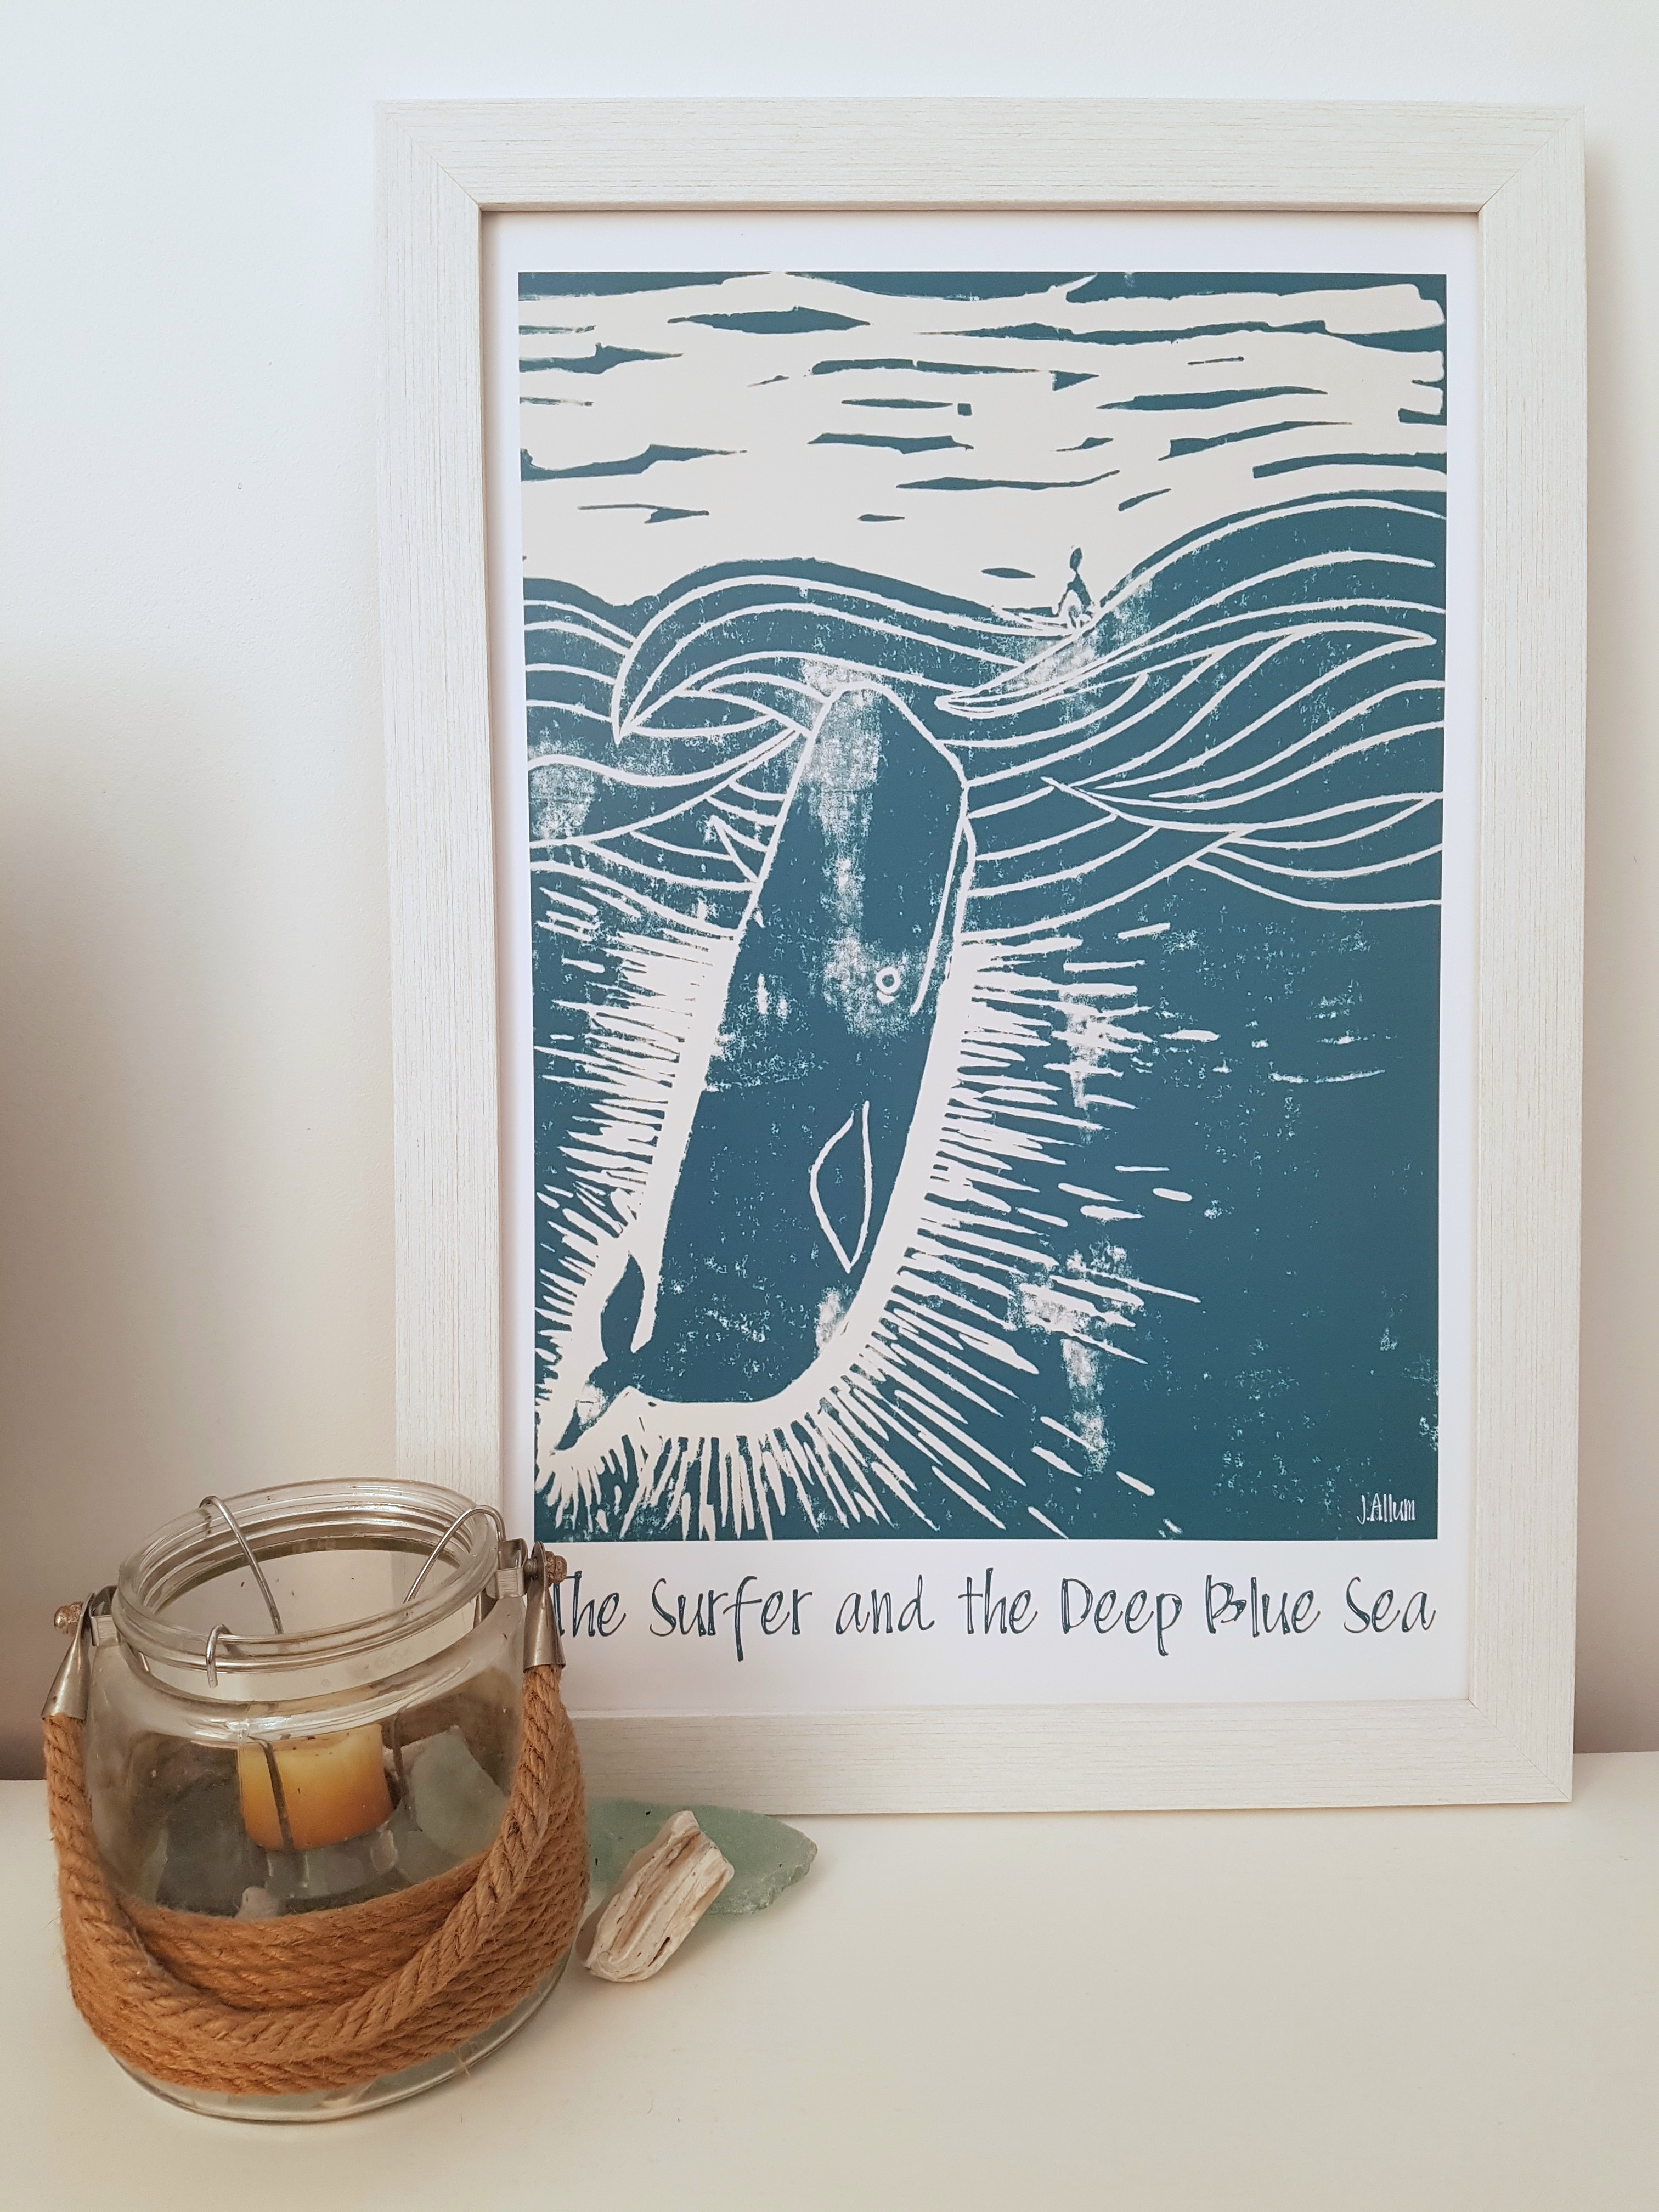 The Surfer and the Deep Blue Sea art print